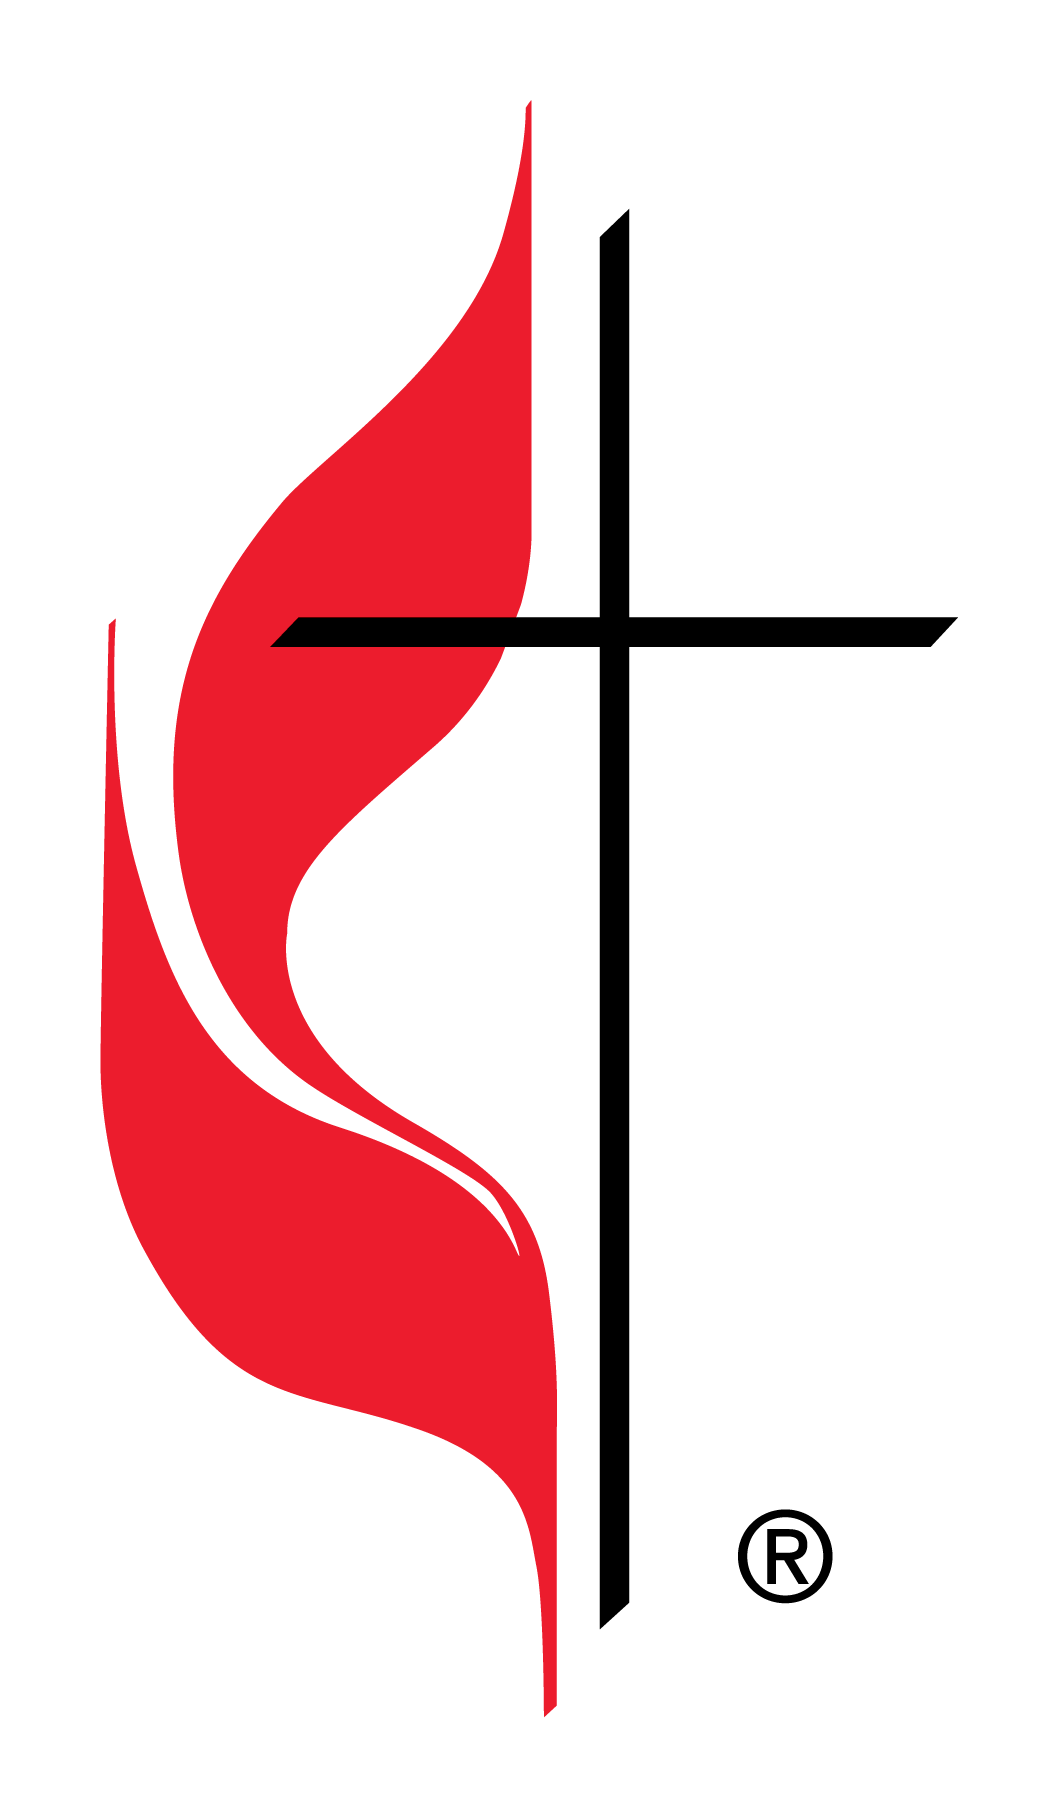 Lent clipart forgiveness cross. Official and flame logo